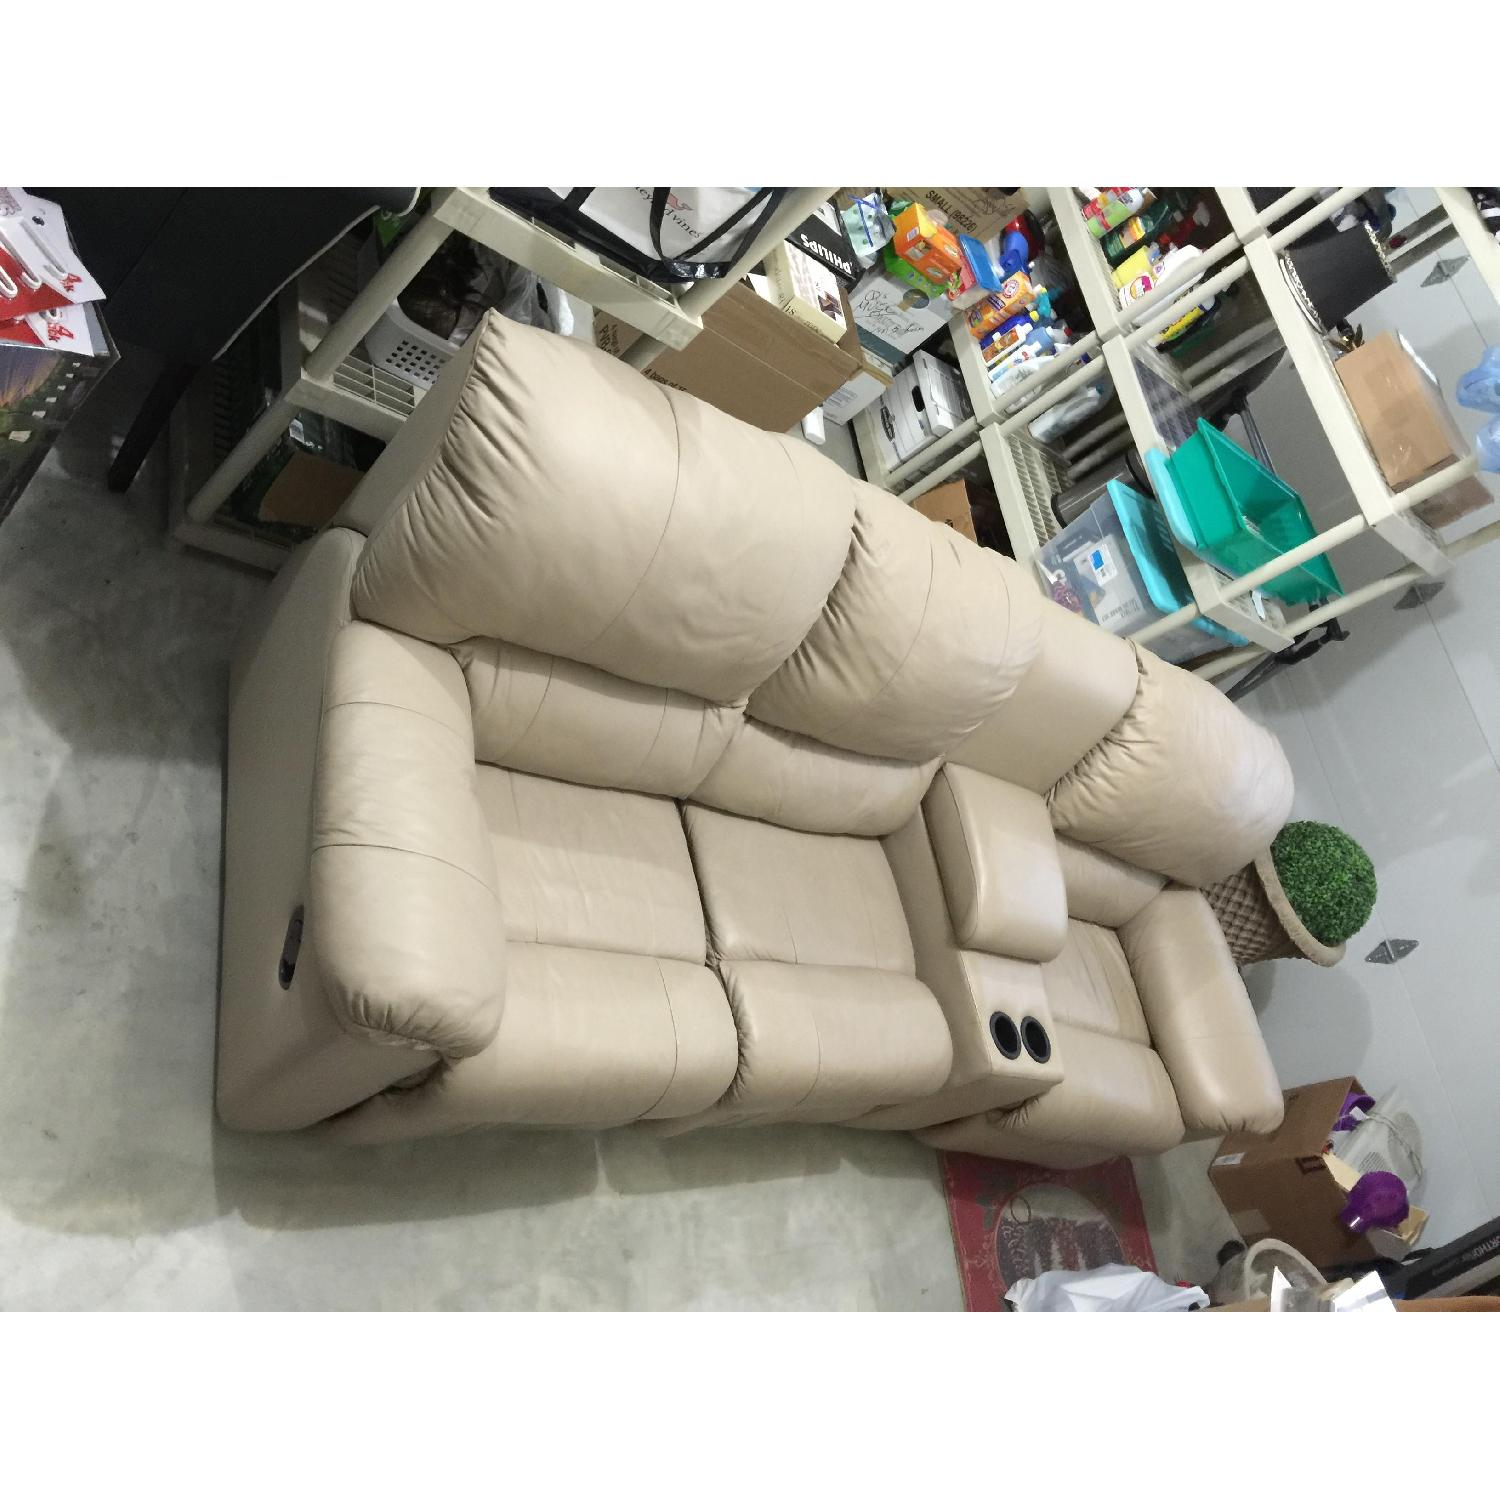 Tan Leather 4 Piece Sectional Sofa w/ Three Reclining Chairs - image-5